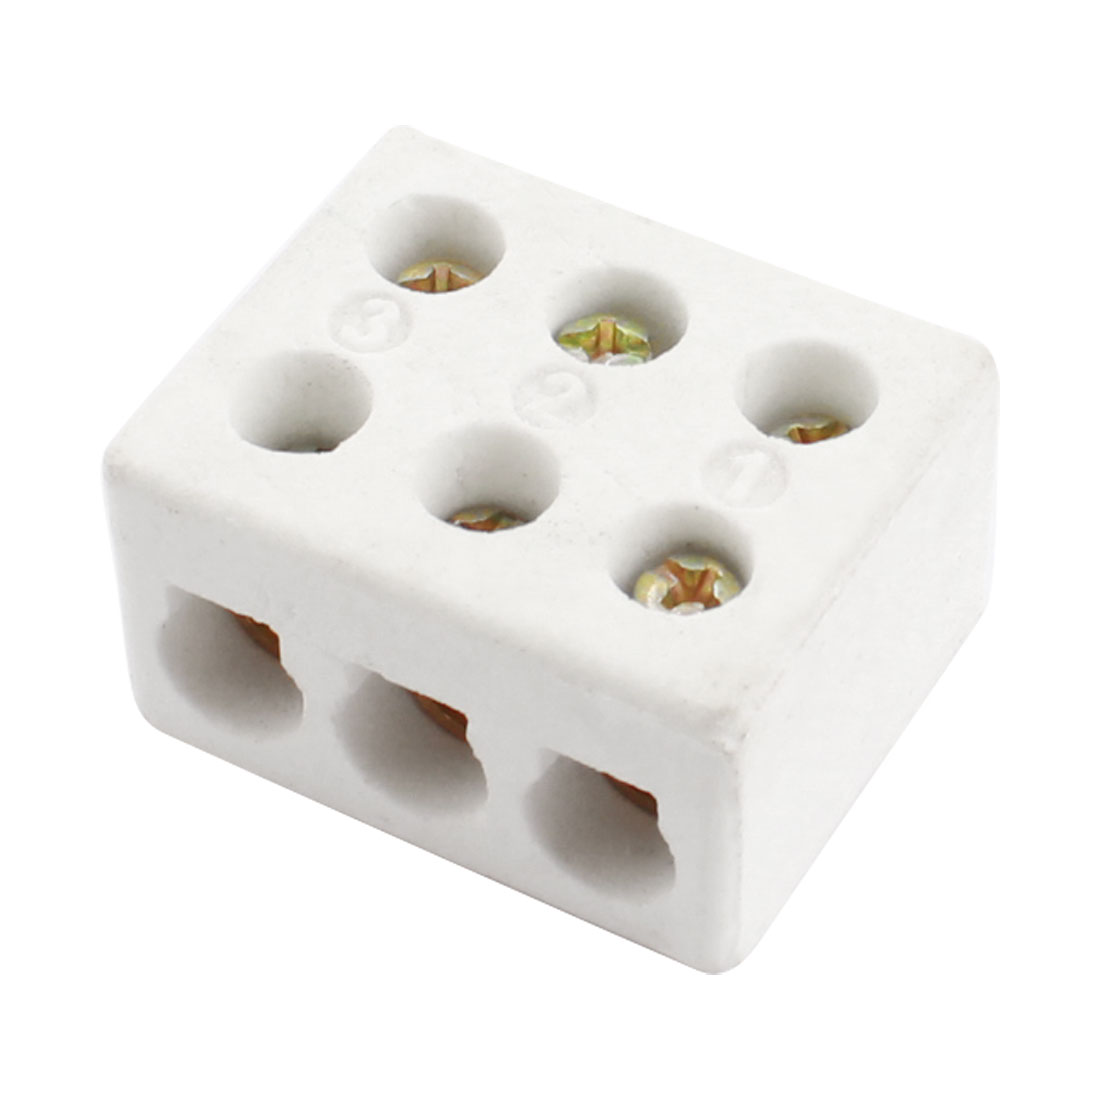 Connector Porcelain Ceramic Terminal Block 3 Way 6 Hole AC 250V 600C